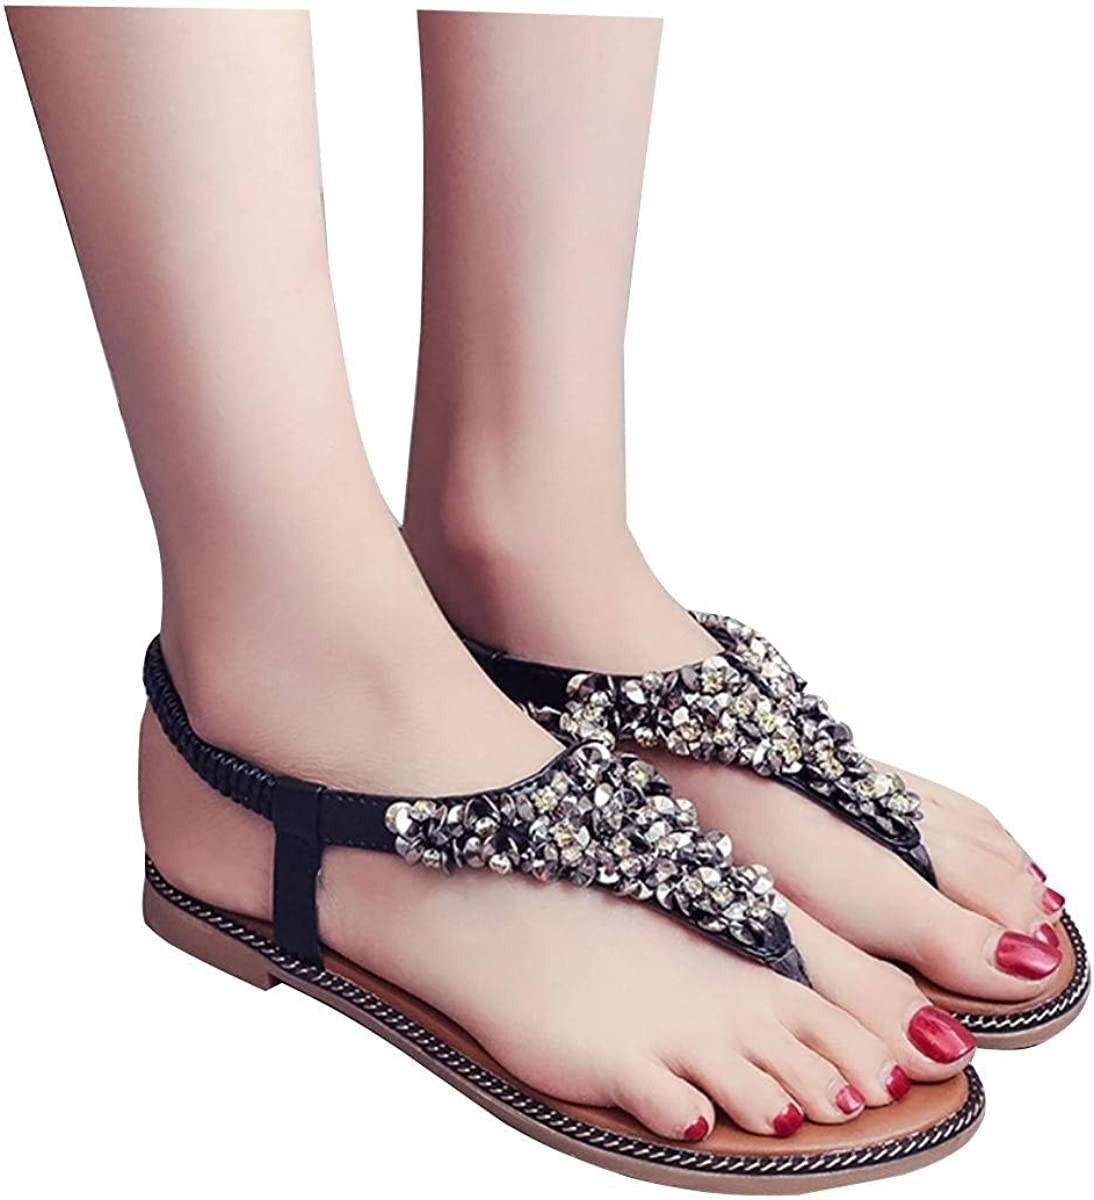 Lady Sandals Womens Sandals Female Summer Flat Korean Version of The Wild Students of The Word Folder Feet with Simple Wild Casual Quality Super Elegant for Women